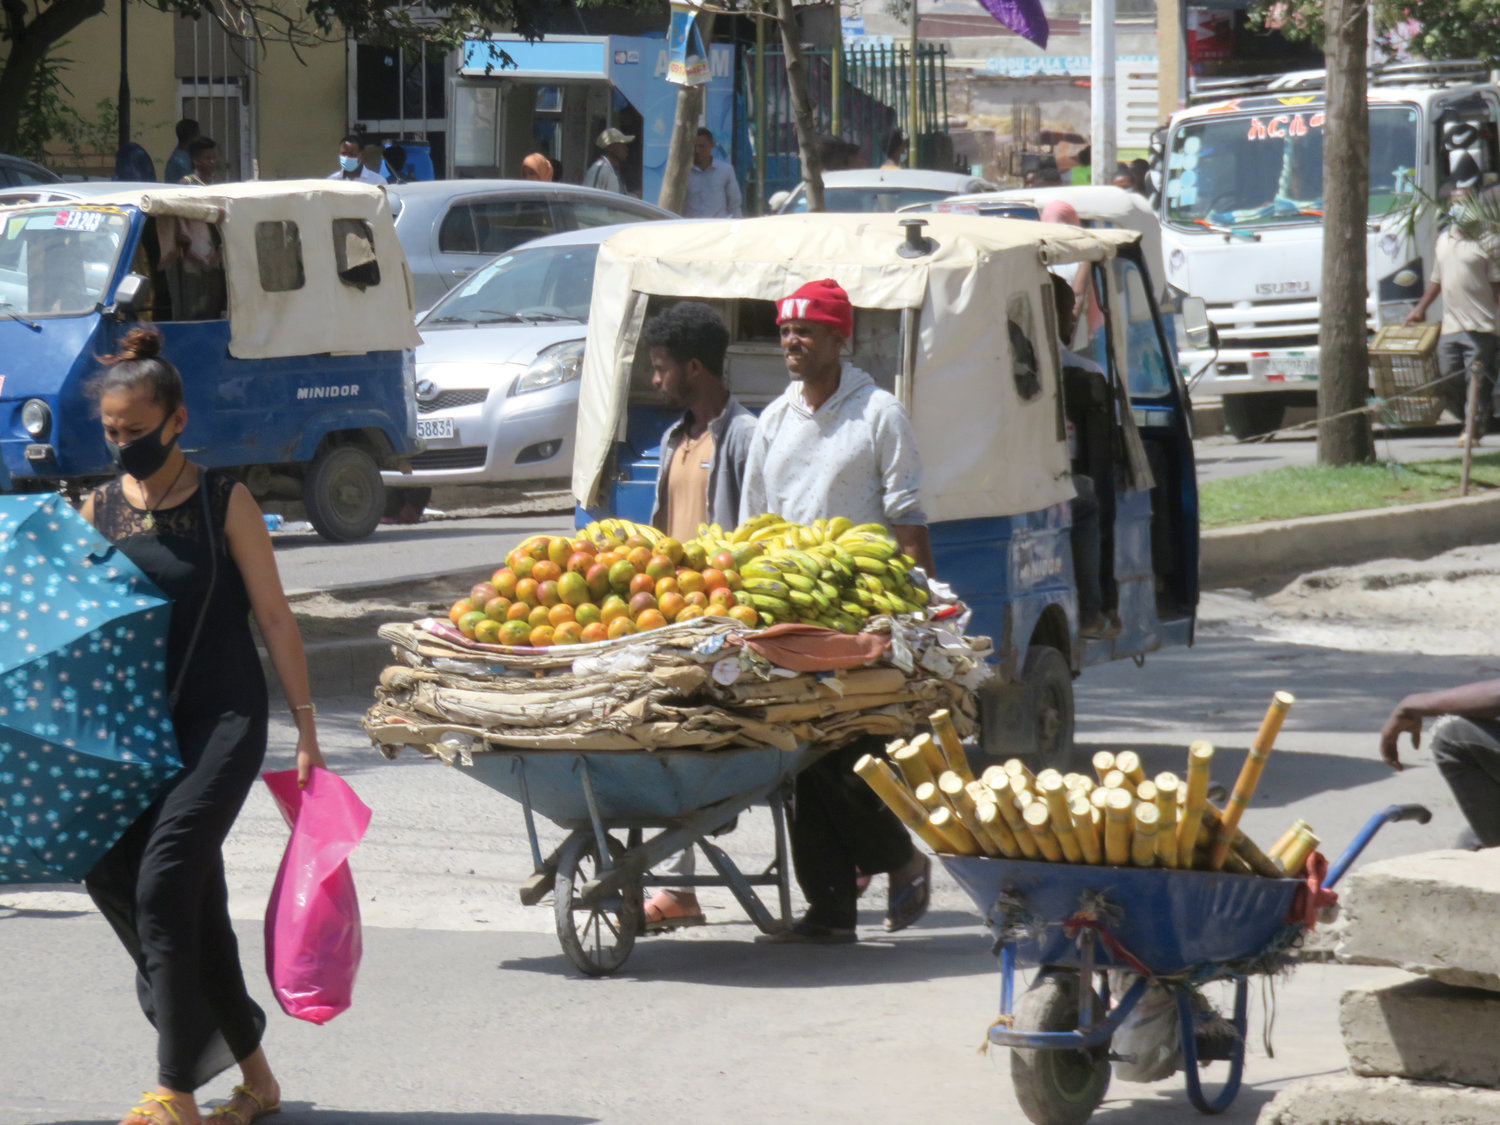 A local vendor wearing a New York hat pushes a cart with fresh produce.